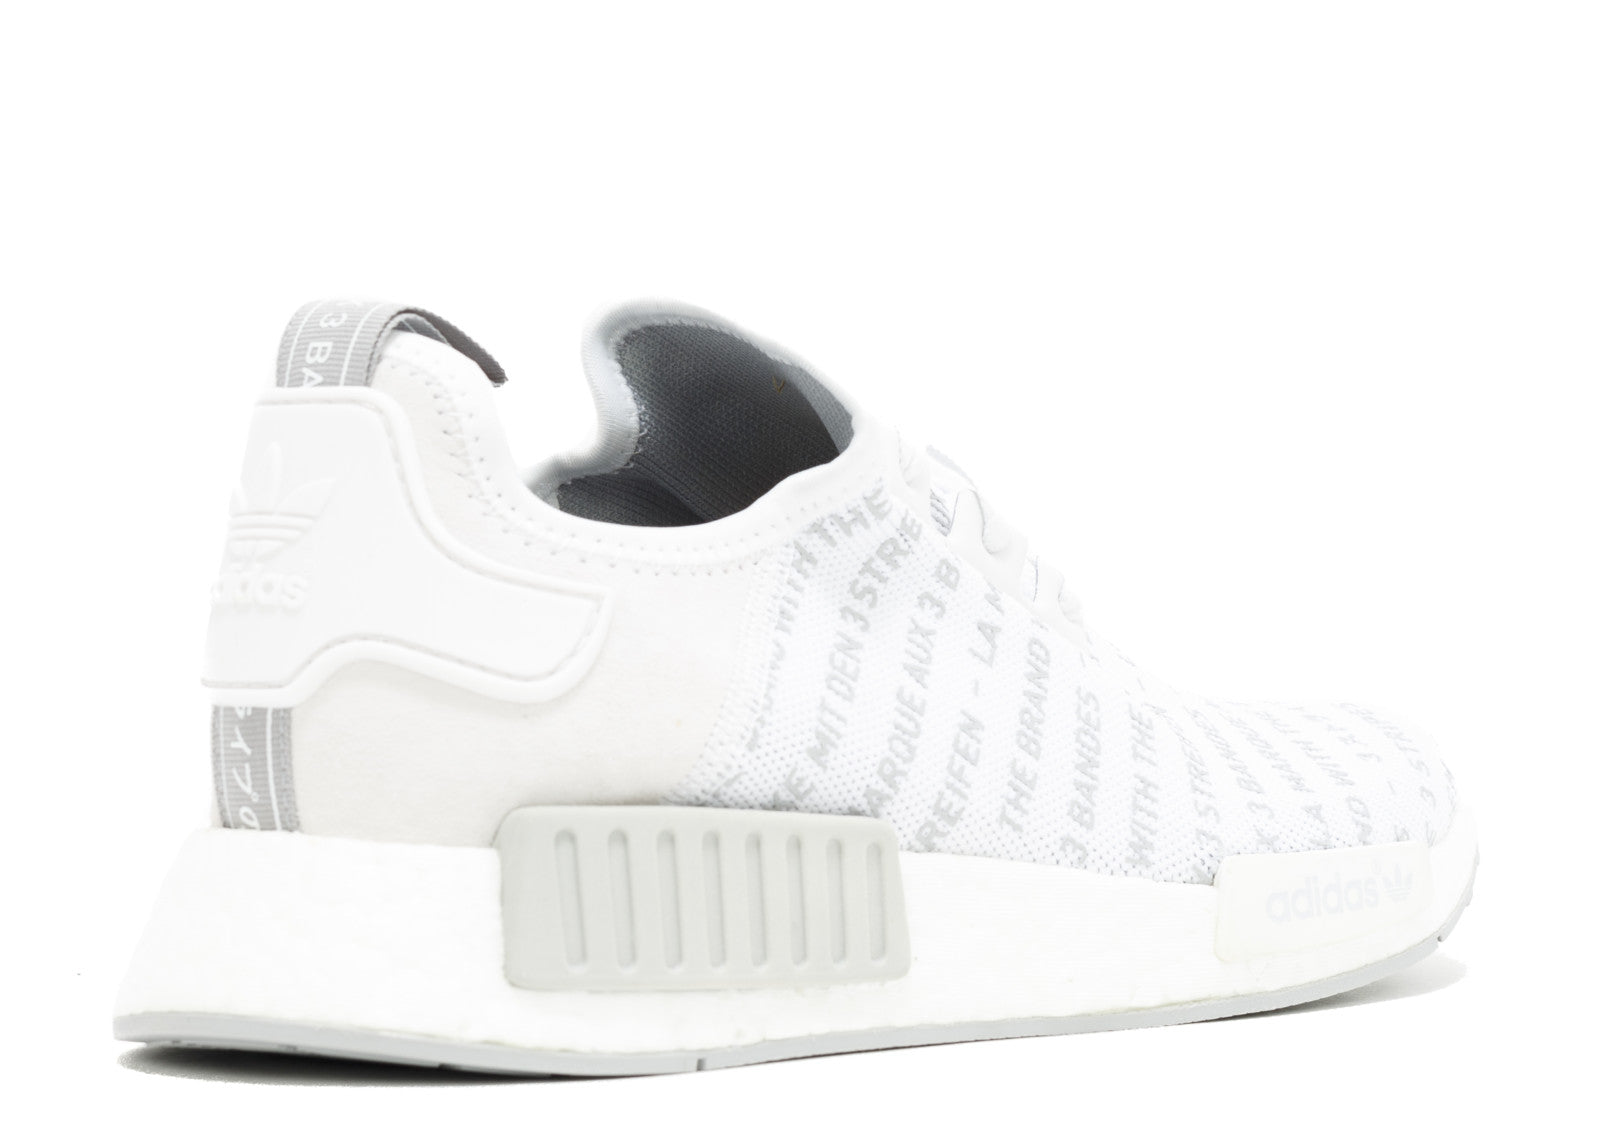 4ac7ceb9fb2 NMD R1 Three Stripes White Black Sneakers Huge selection and amazing  prices. Sneakersnstuff yeezy zebra raffle.